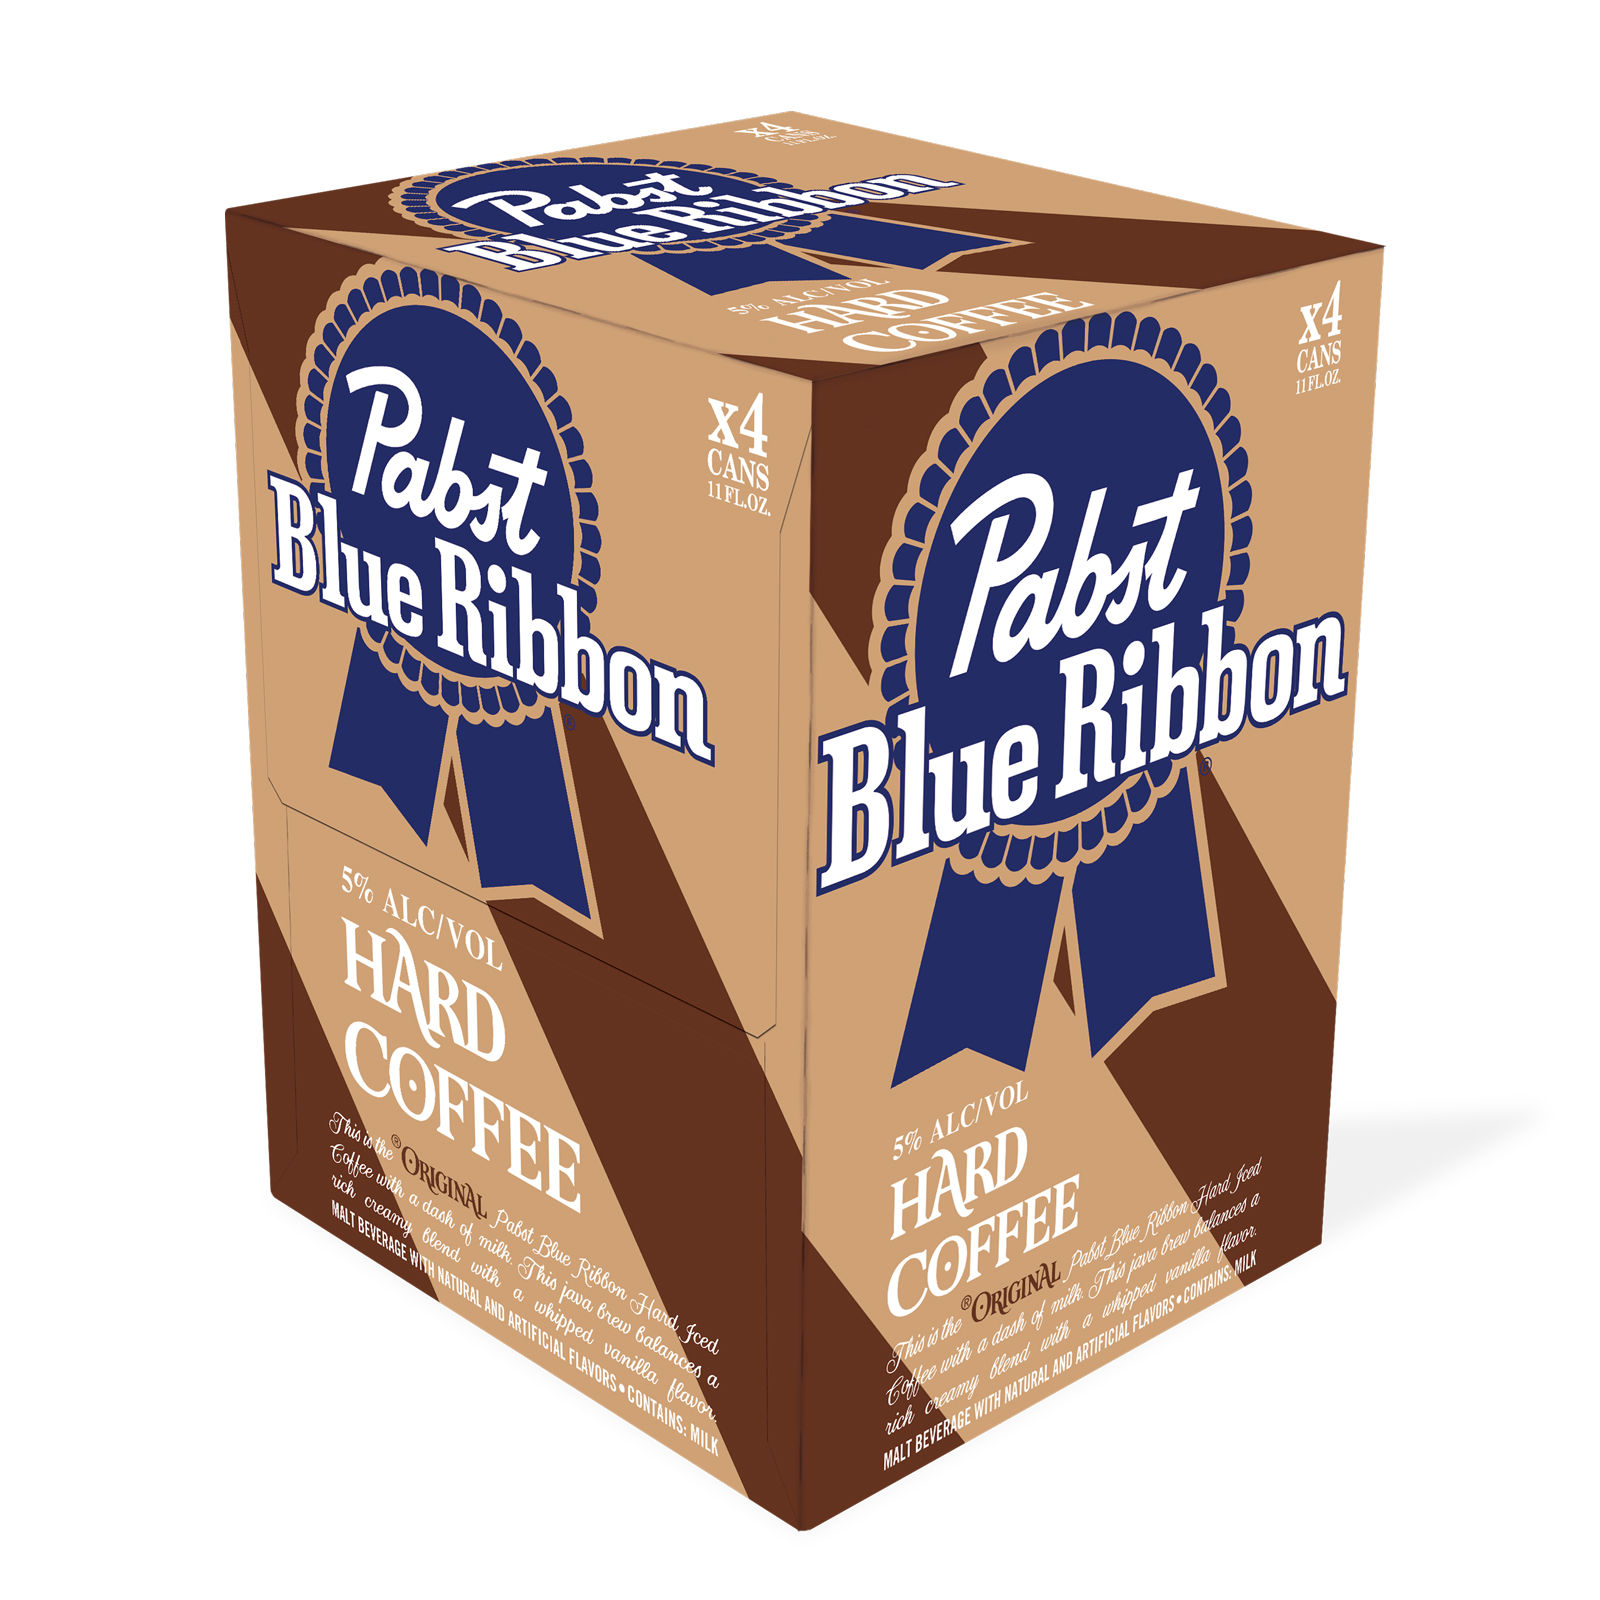 pbr-hard-coffee-pack-ft-BLOG0719.jpg